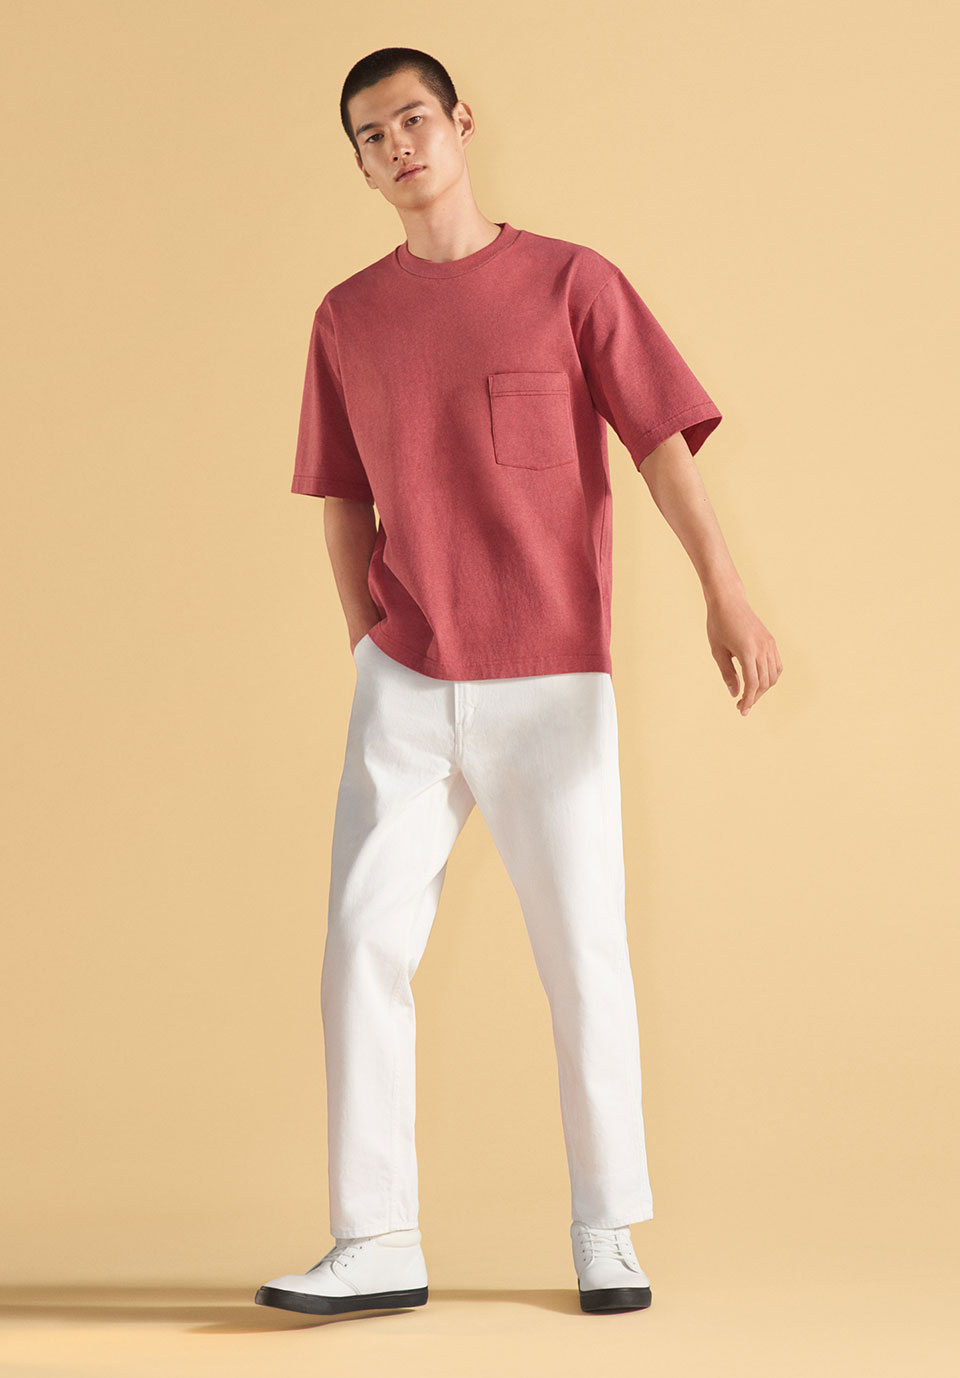 UNIQLO U by CHRISTOPHE LEMAIRE  CAMPAIGN IMAGE  SPRING/ SUMMER 2019